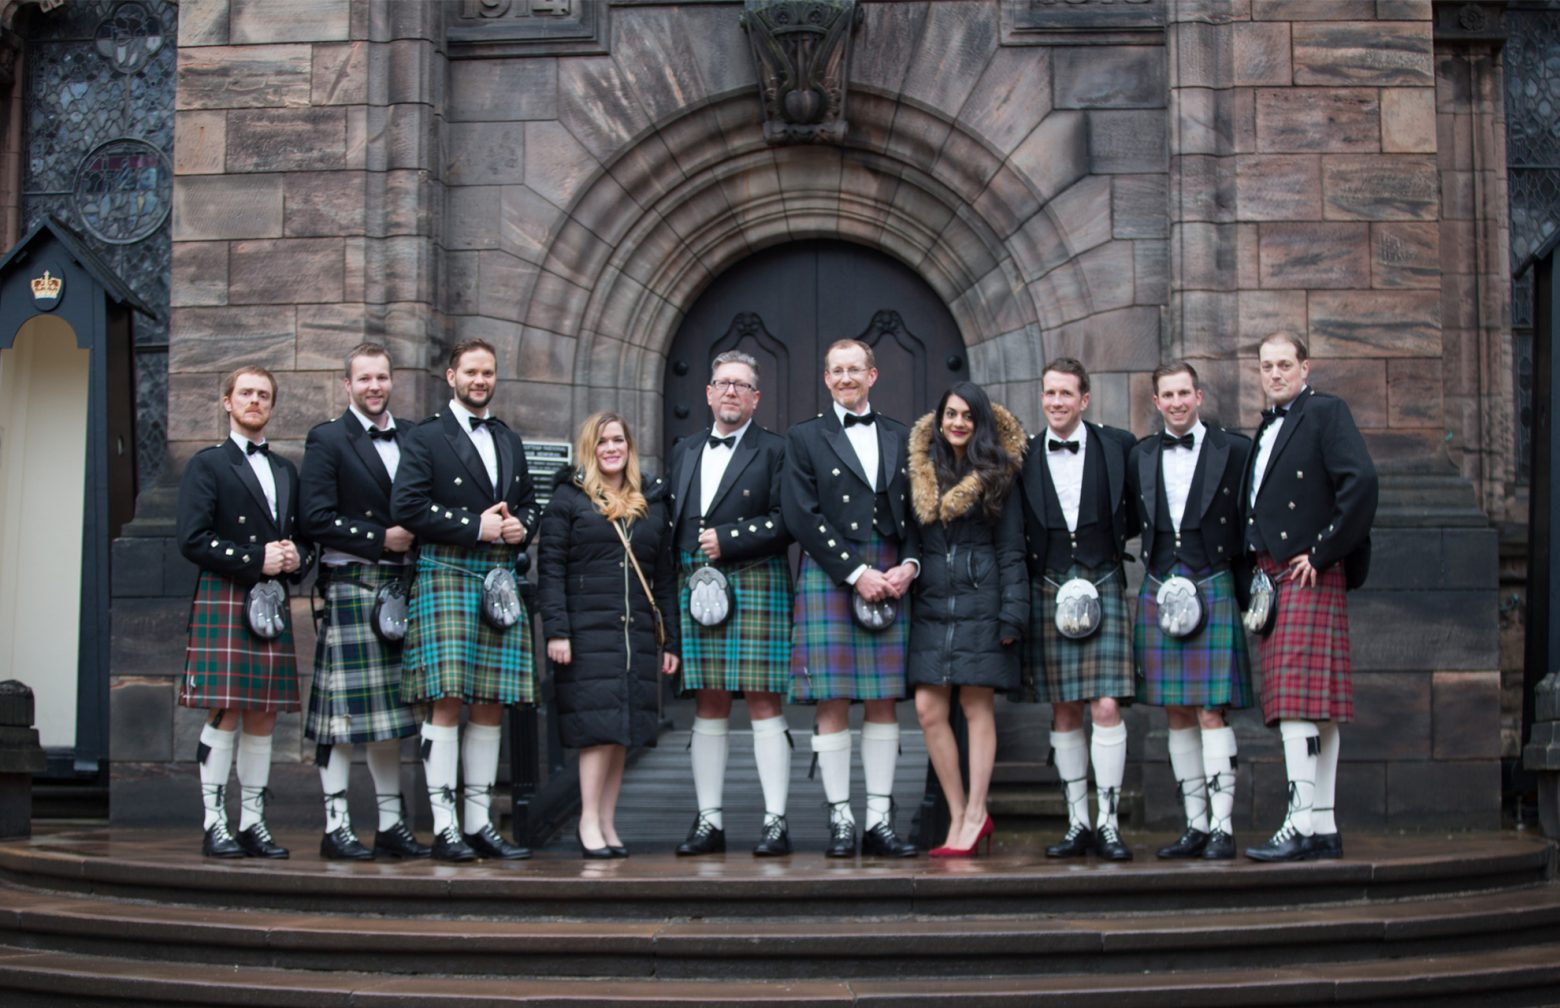 Participants of the Aspire Business Symposium in Scotland wearing the traditional kilts